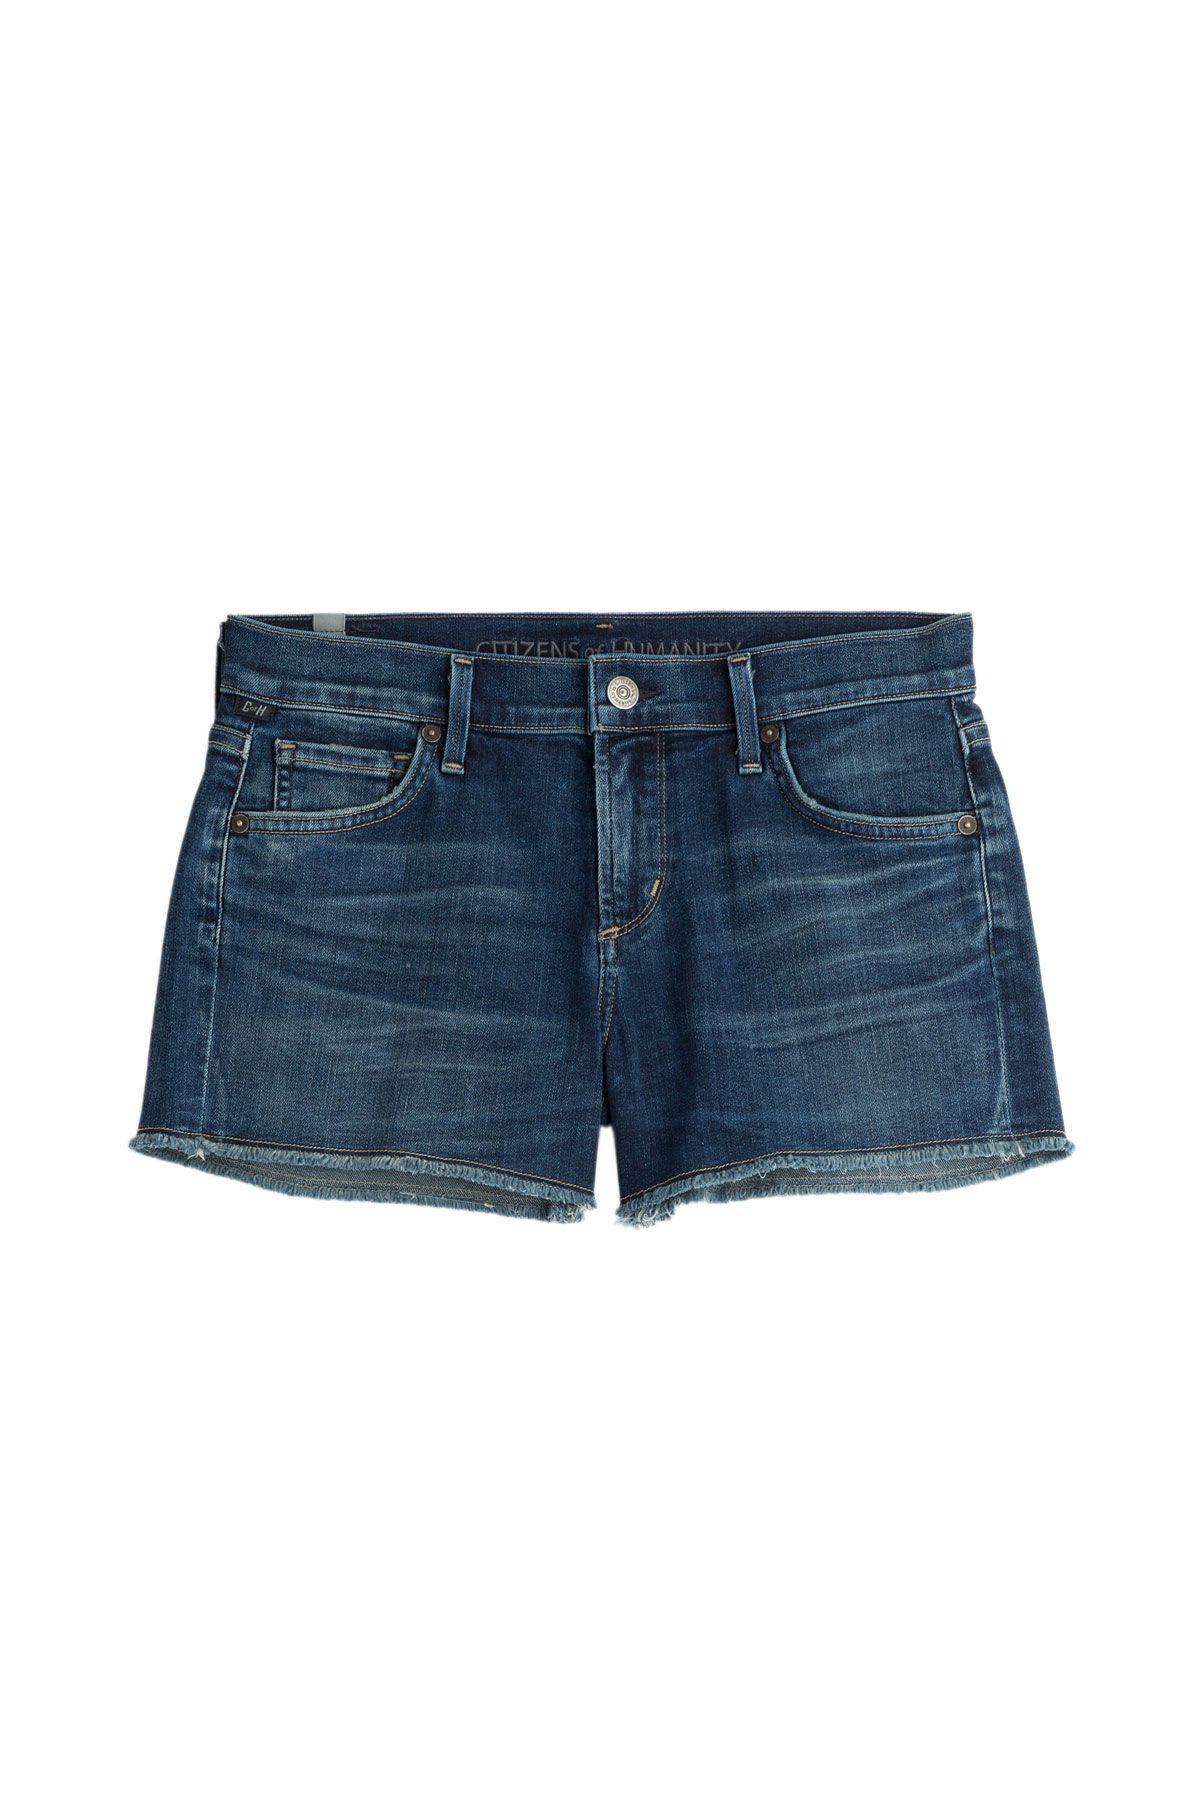 """Citizens of Humanity Ava Cut-Off Denim Shorts, $185; &lt;a target=""""_blank"""" href=""""http://www.stylebop.com/us/product_details.php?id=596497""""&gt;stylebop.com&lt;/a&gt;   <!--EndFragment-->"""